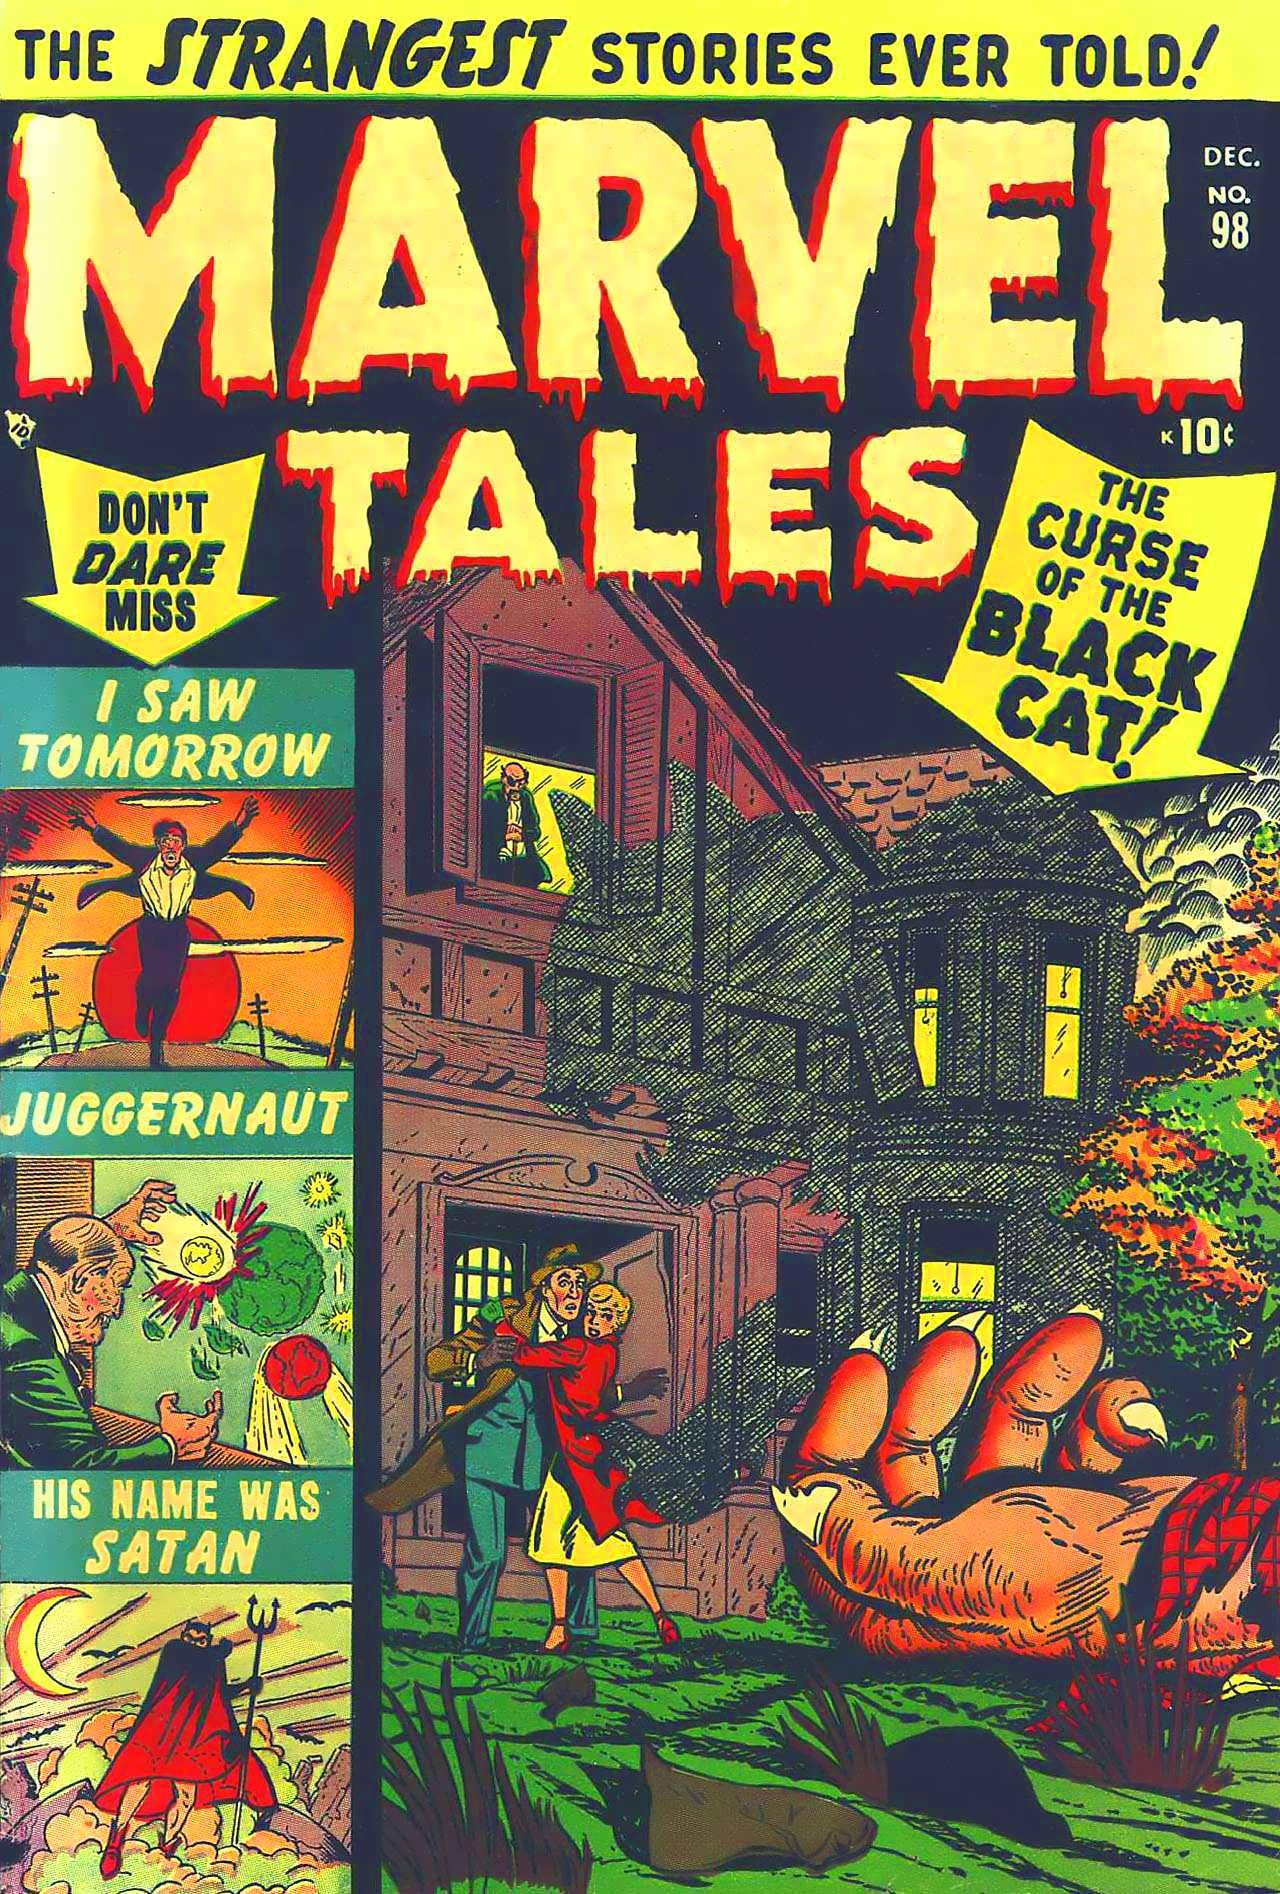 Marvel Tales (1949) 98 Page 1